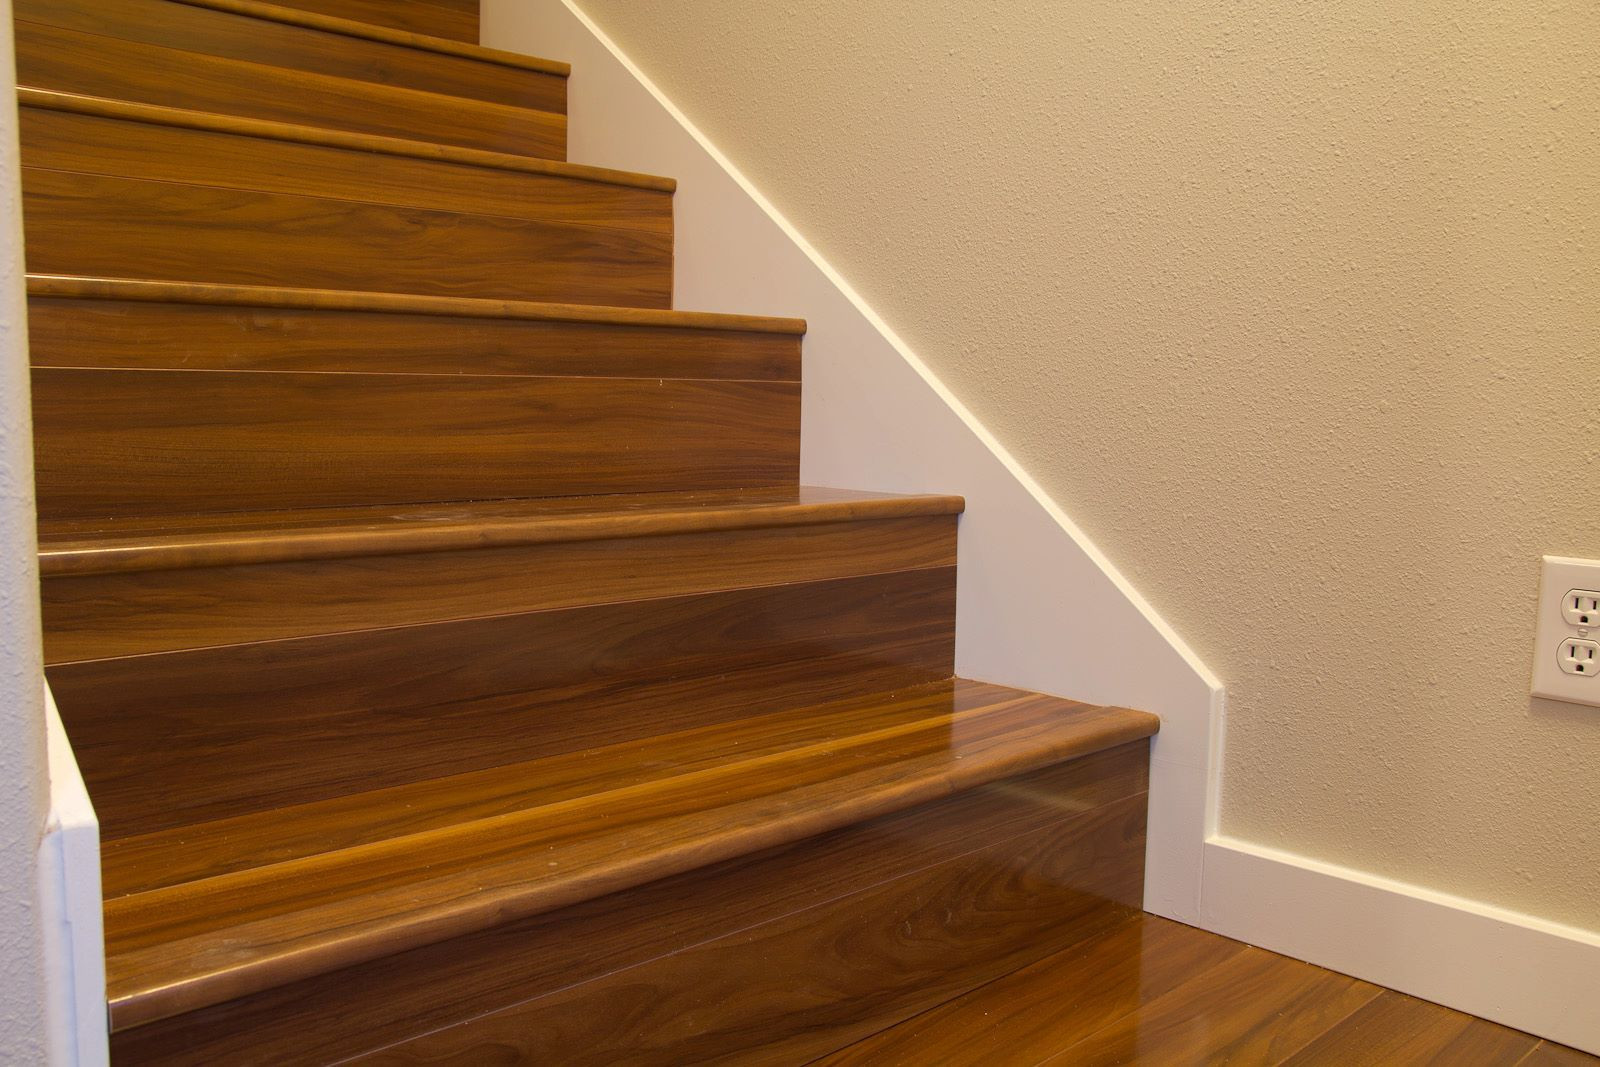 replacing carpet with hardwood floors cost of can you install laminate flooring on stairs you may be wondering intended for can you install laminate flooring on stairs you may be wondering how to match your stairs with your beautiful laminate floors we answer this frequently